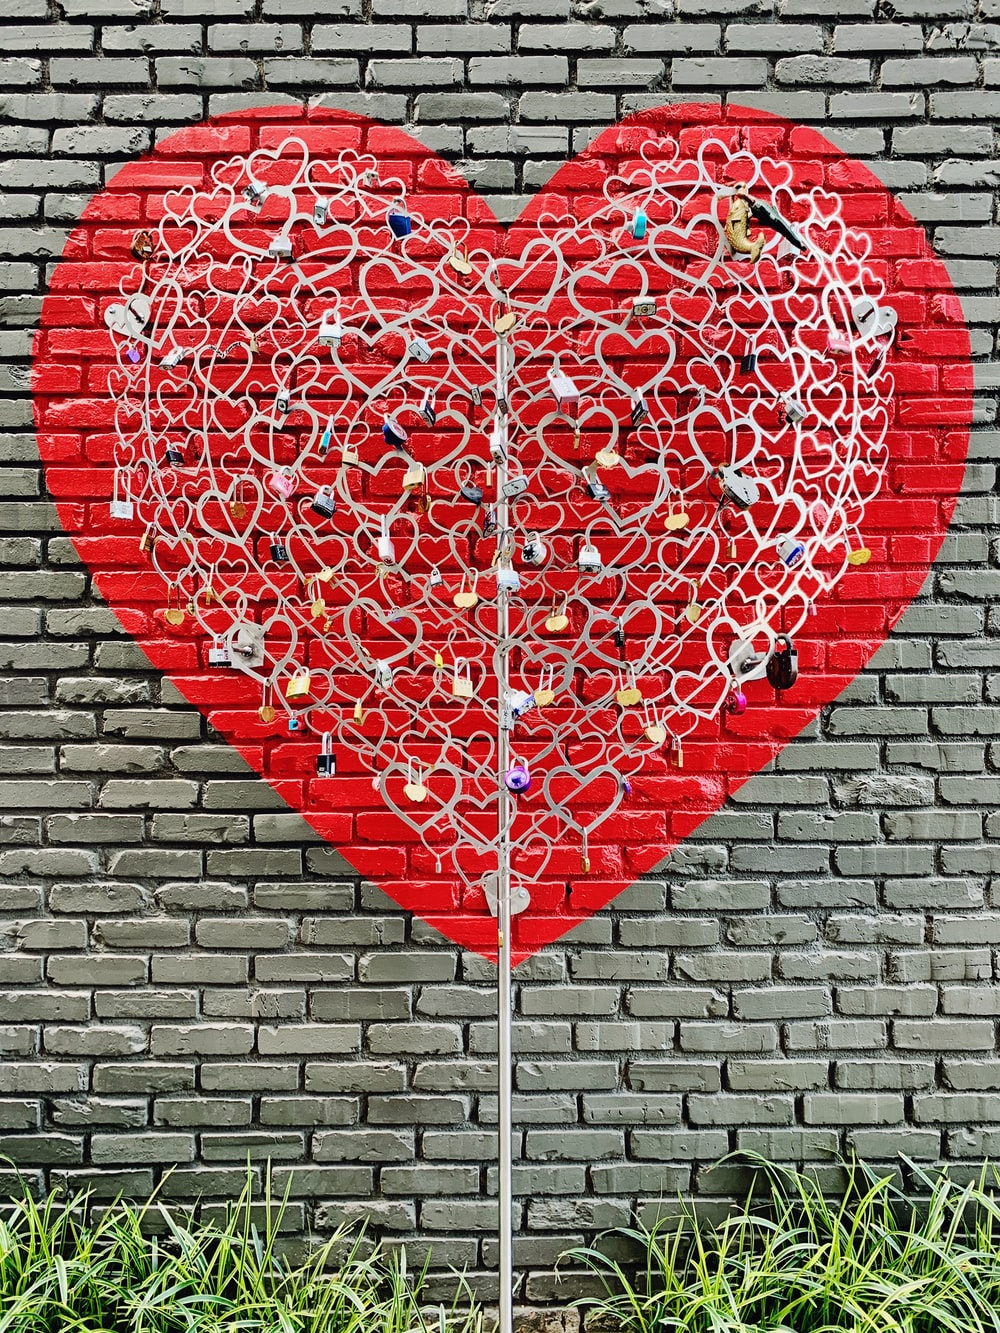 red heart shaped balloon on brown brick wall